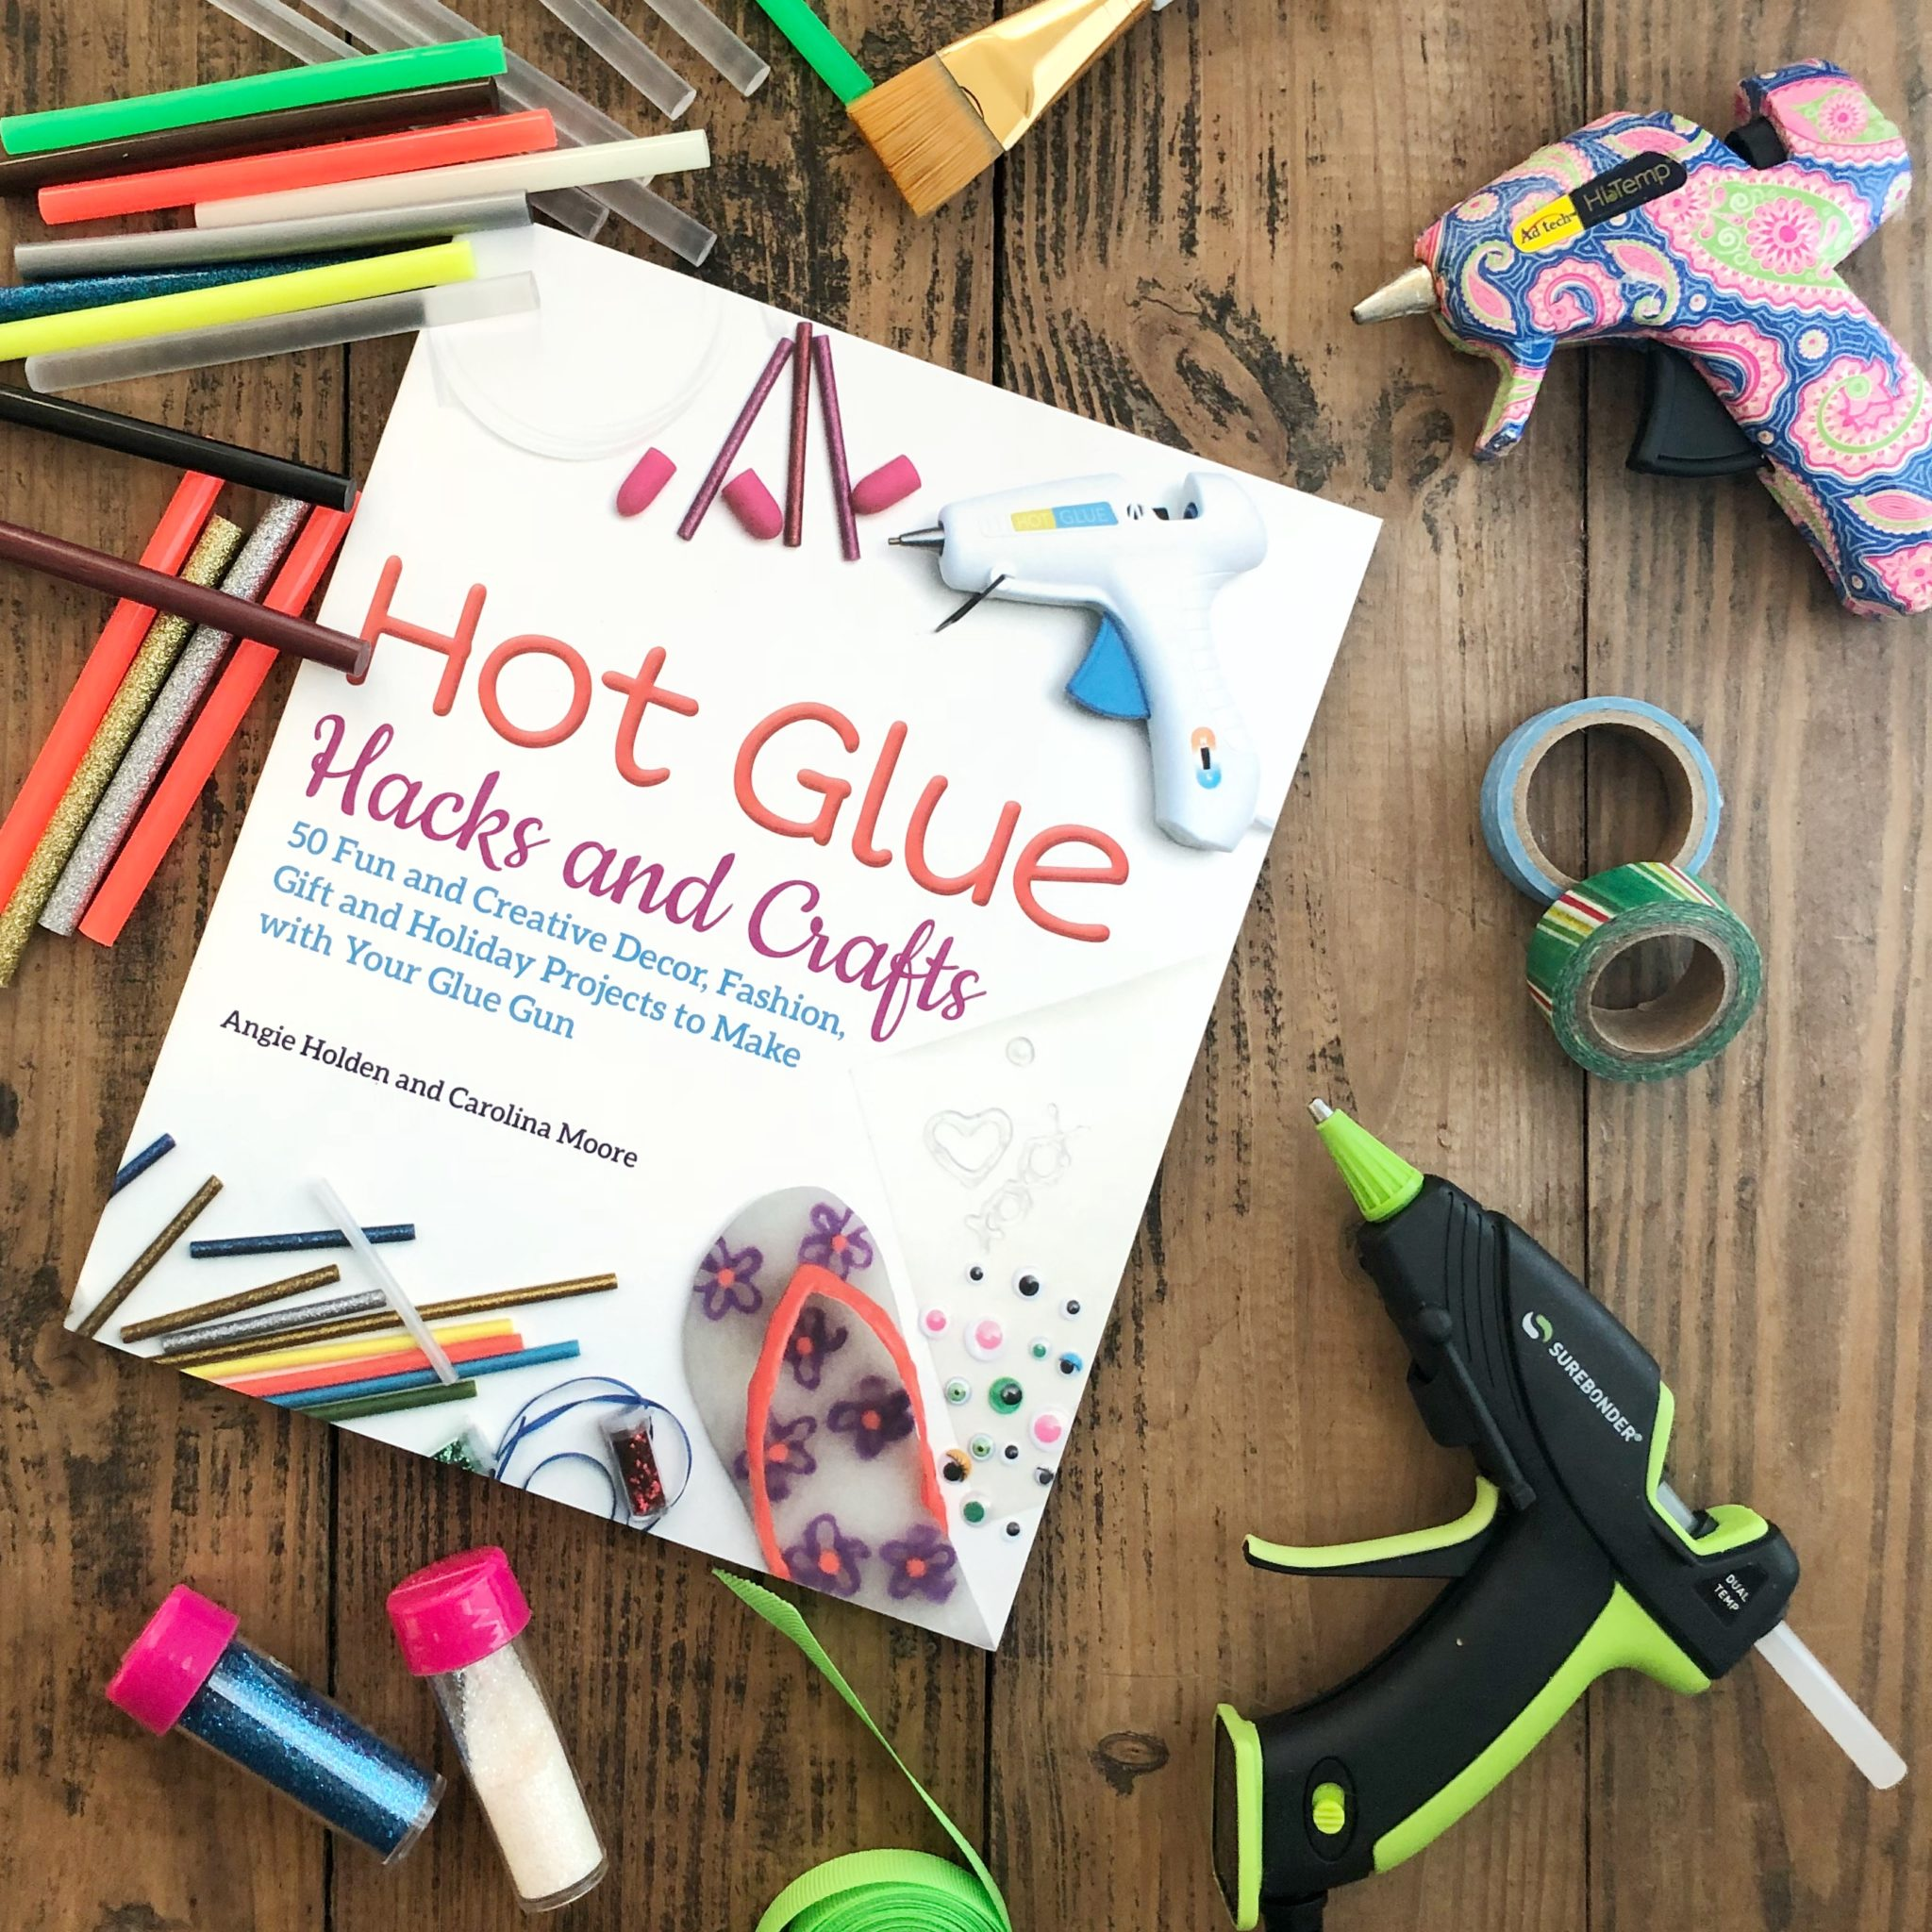 Hot Glue Hack and Crafts the book by Angie Holden and Carolina Moore